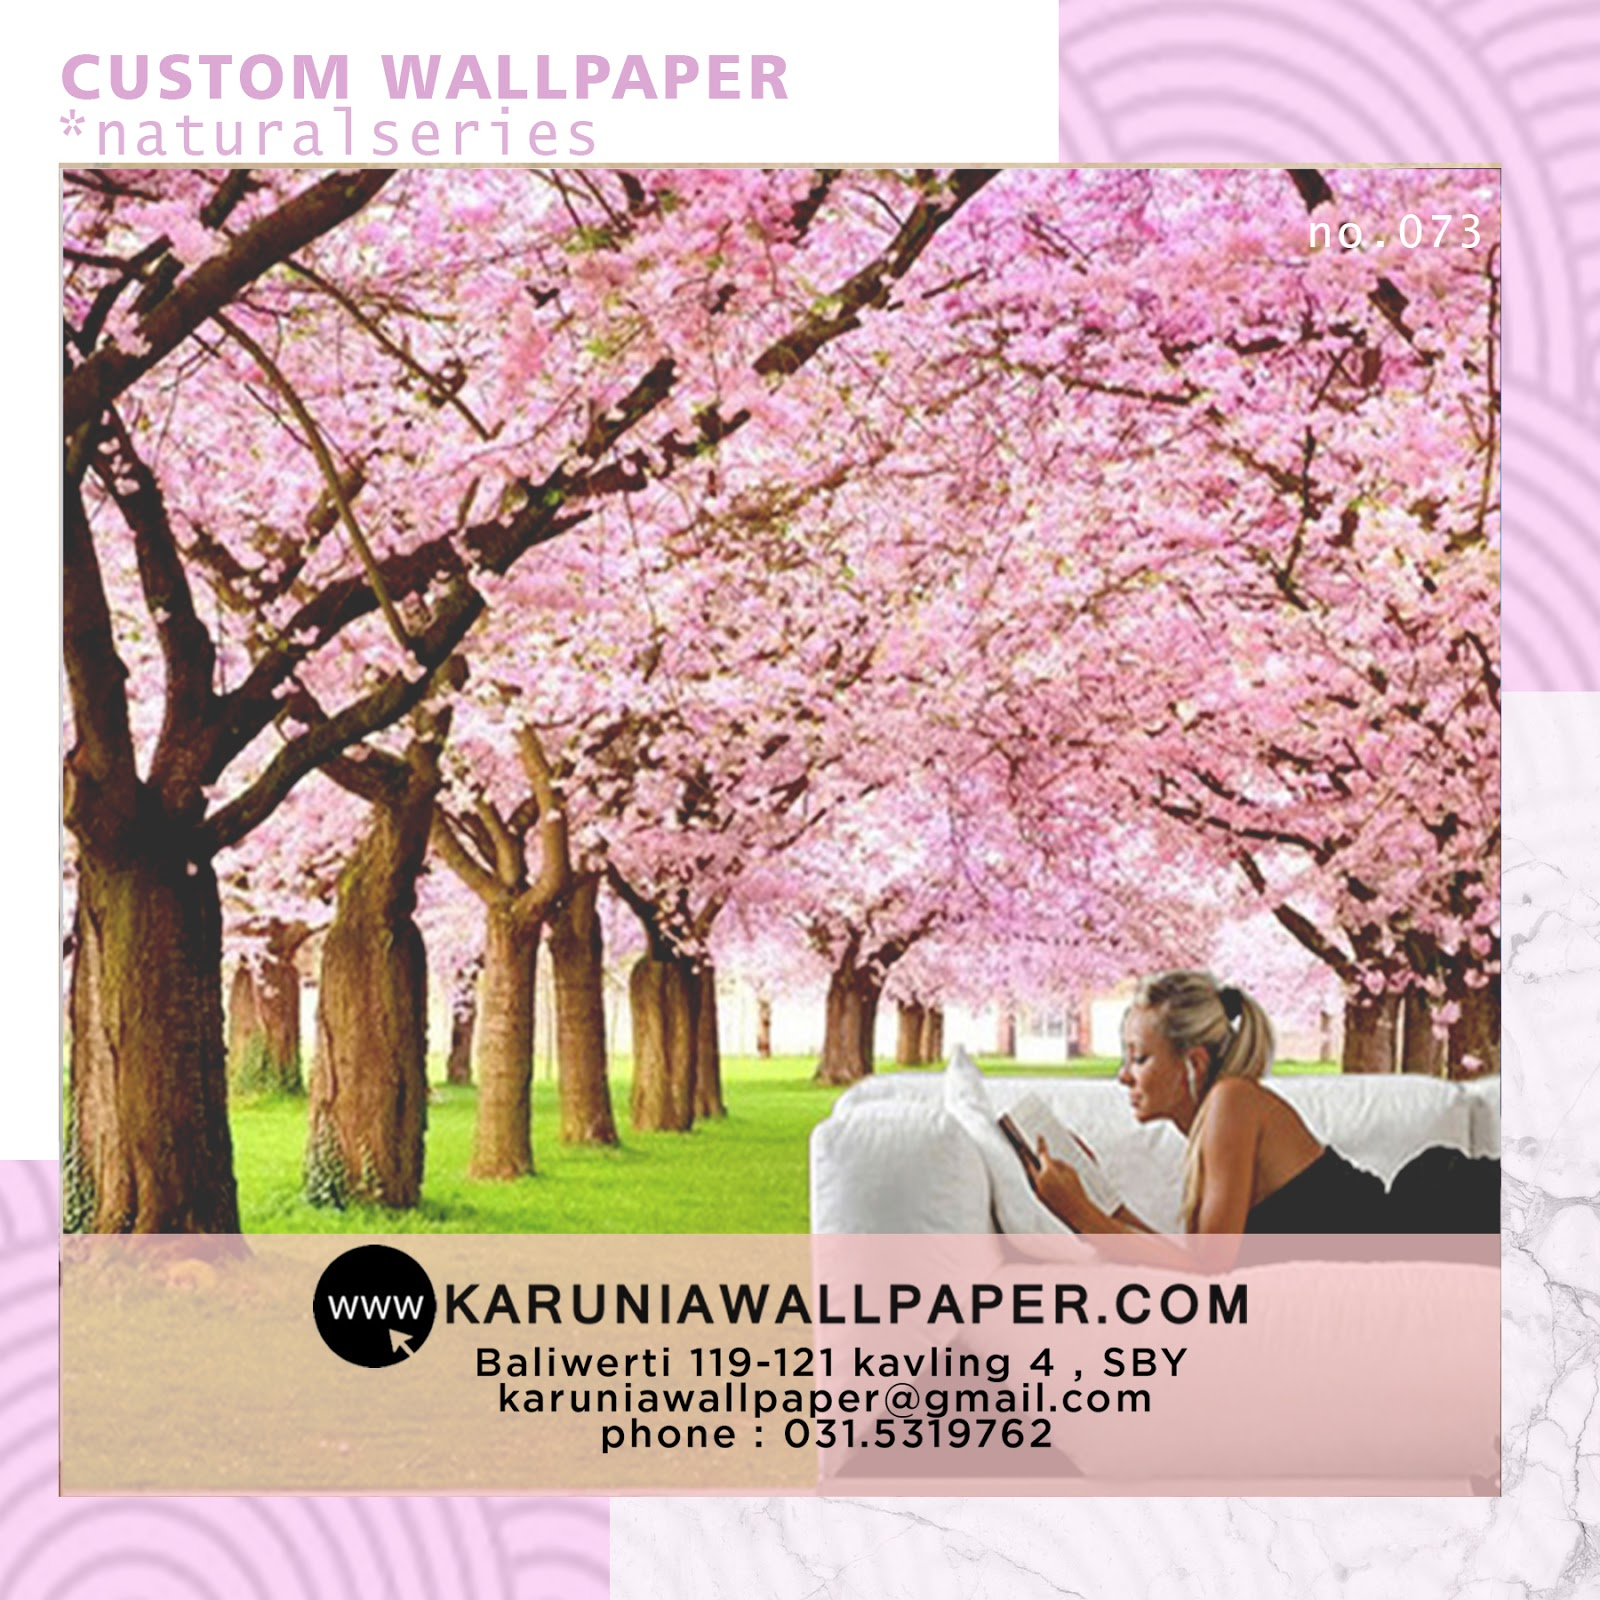 jual wallpaper custom karuniawallpaper